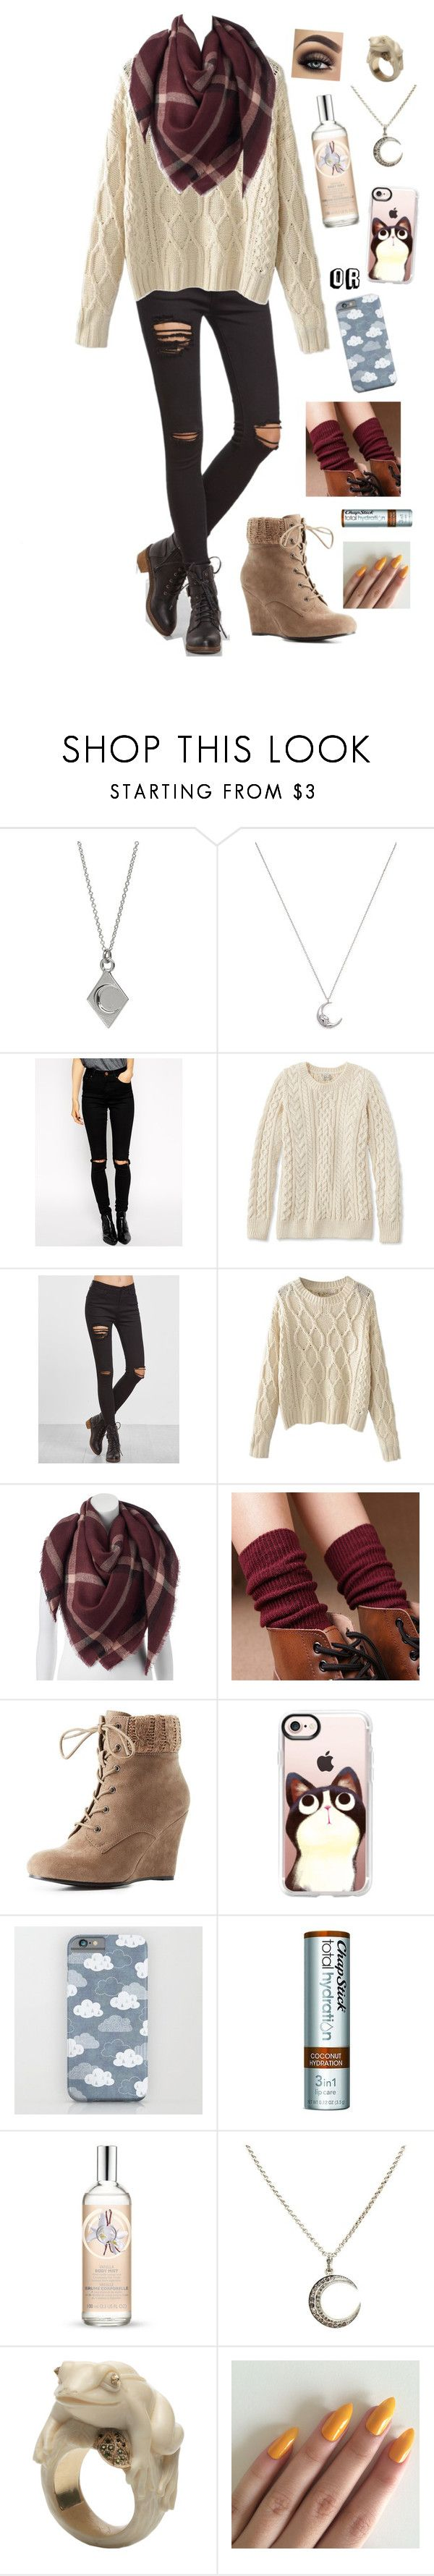 """""""No Title #209"""" by emily102901 ❤ liked on Polyvore featuring Estella Bartlett, ASOS, L.L.Bean, LC Lauren Conrad, Charlotte Russe, Casetify, Chapstick, The Body Shop and BIBI VAN DER VELDEN"""